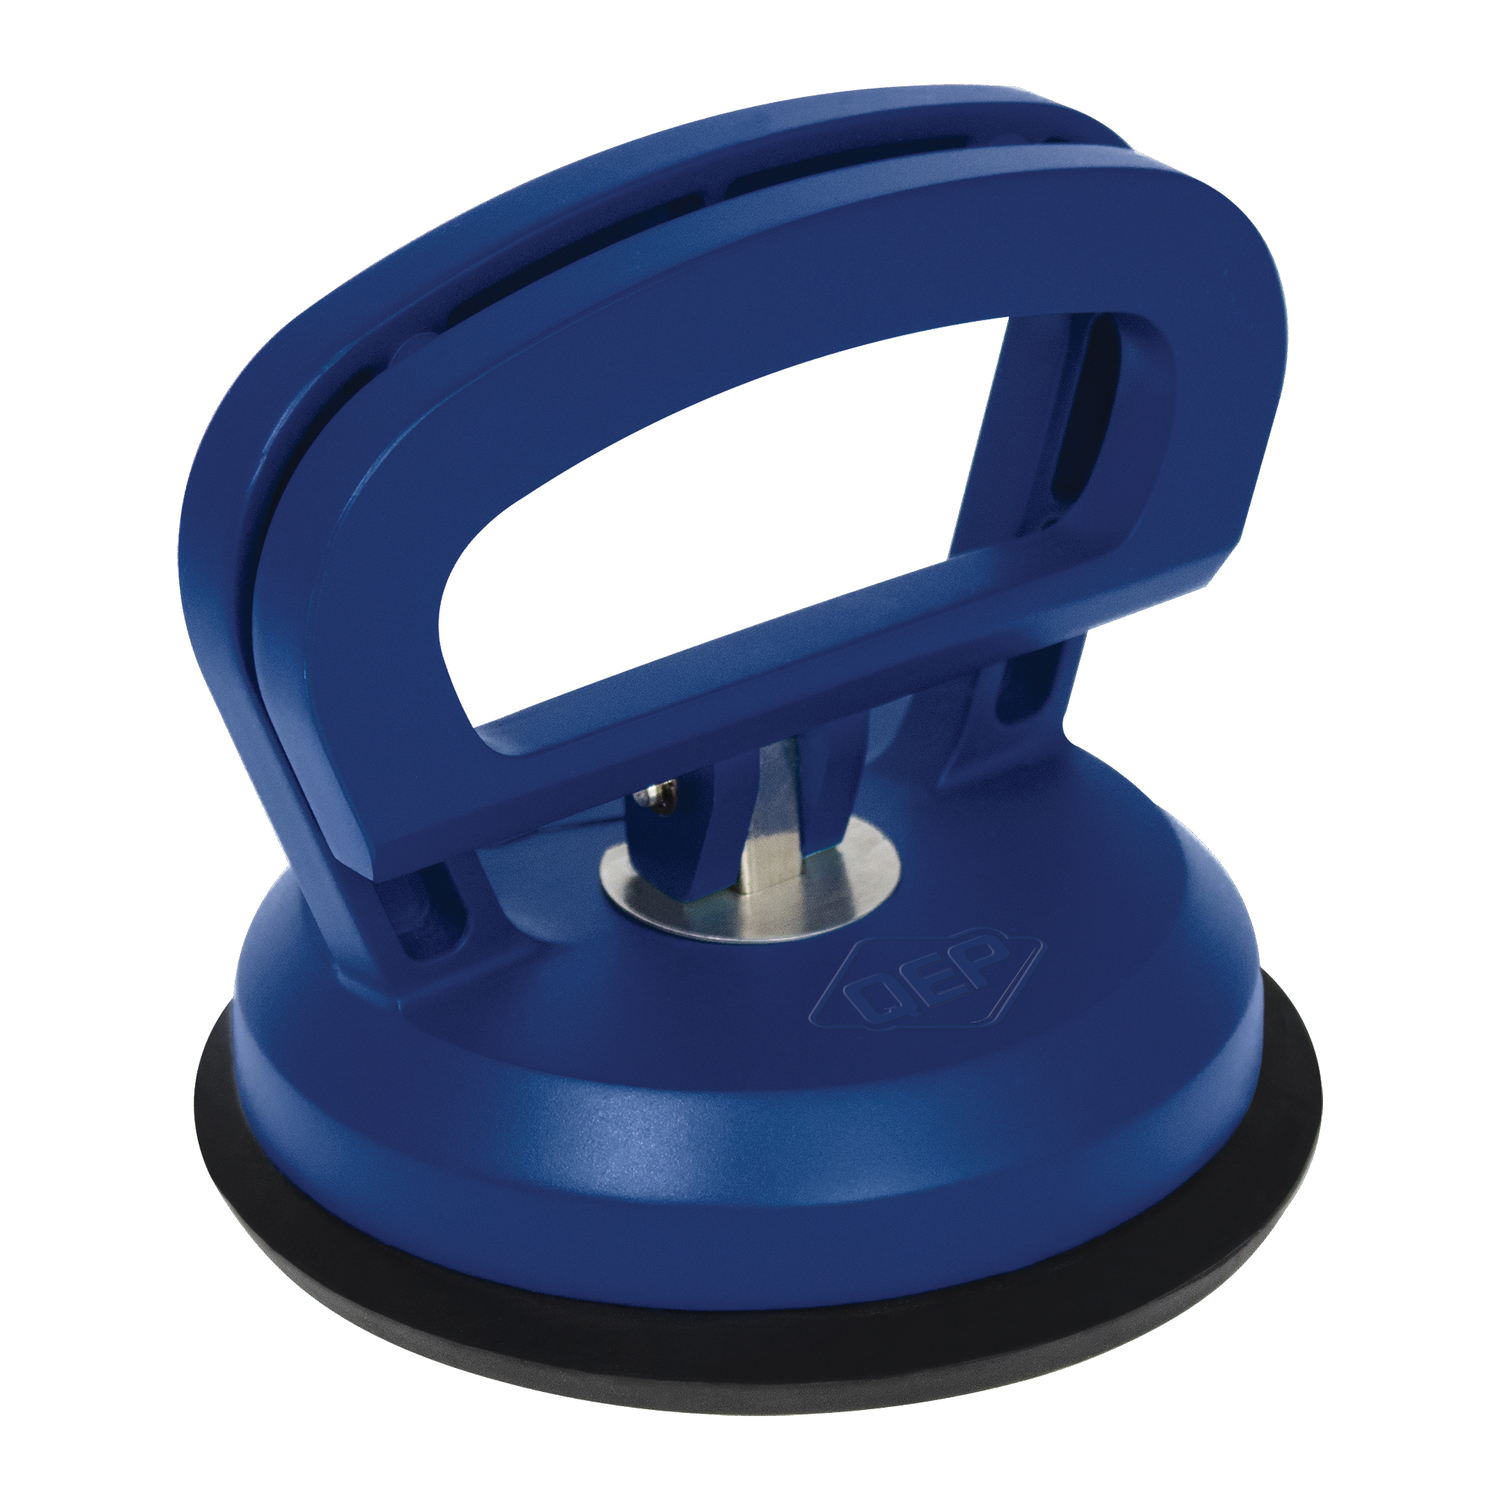 Double Suction Pad Clamps Suction Pads Window Door Panel Glass Suction Lifters